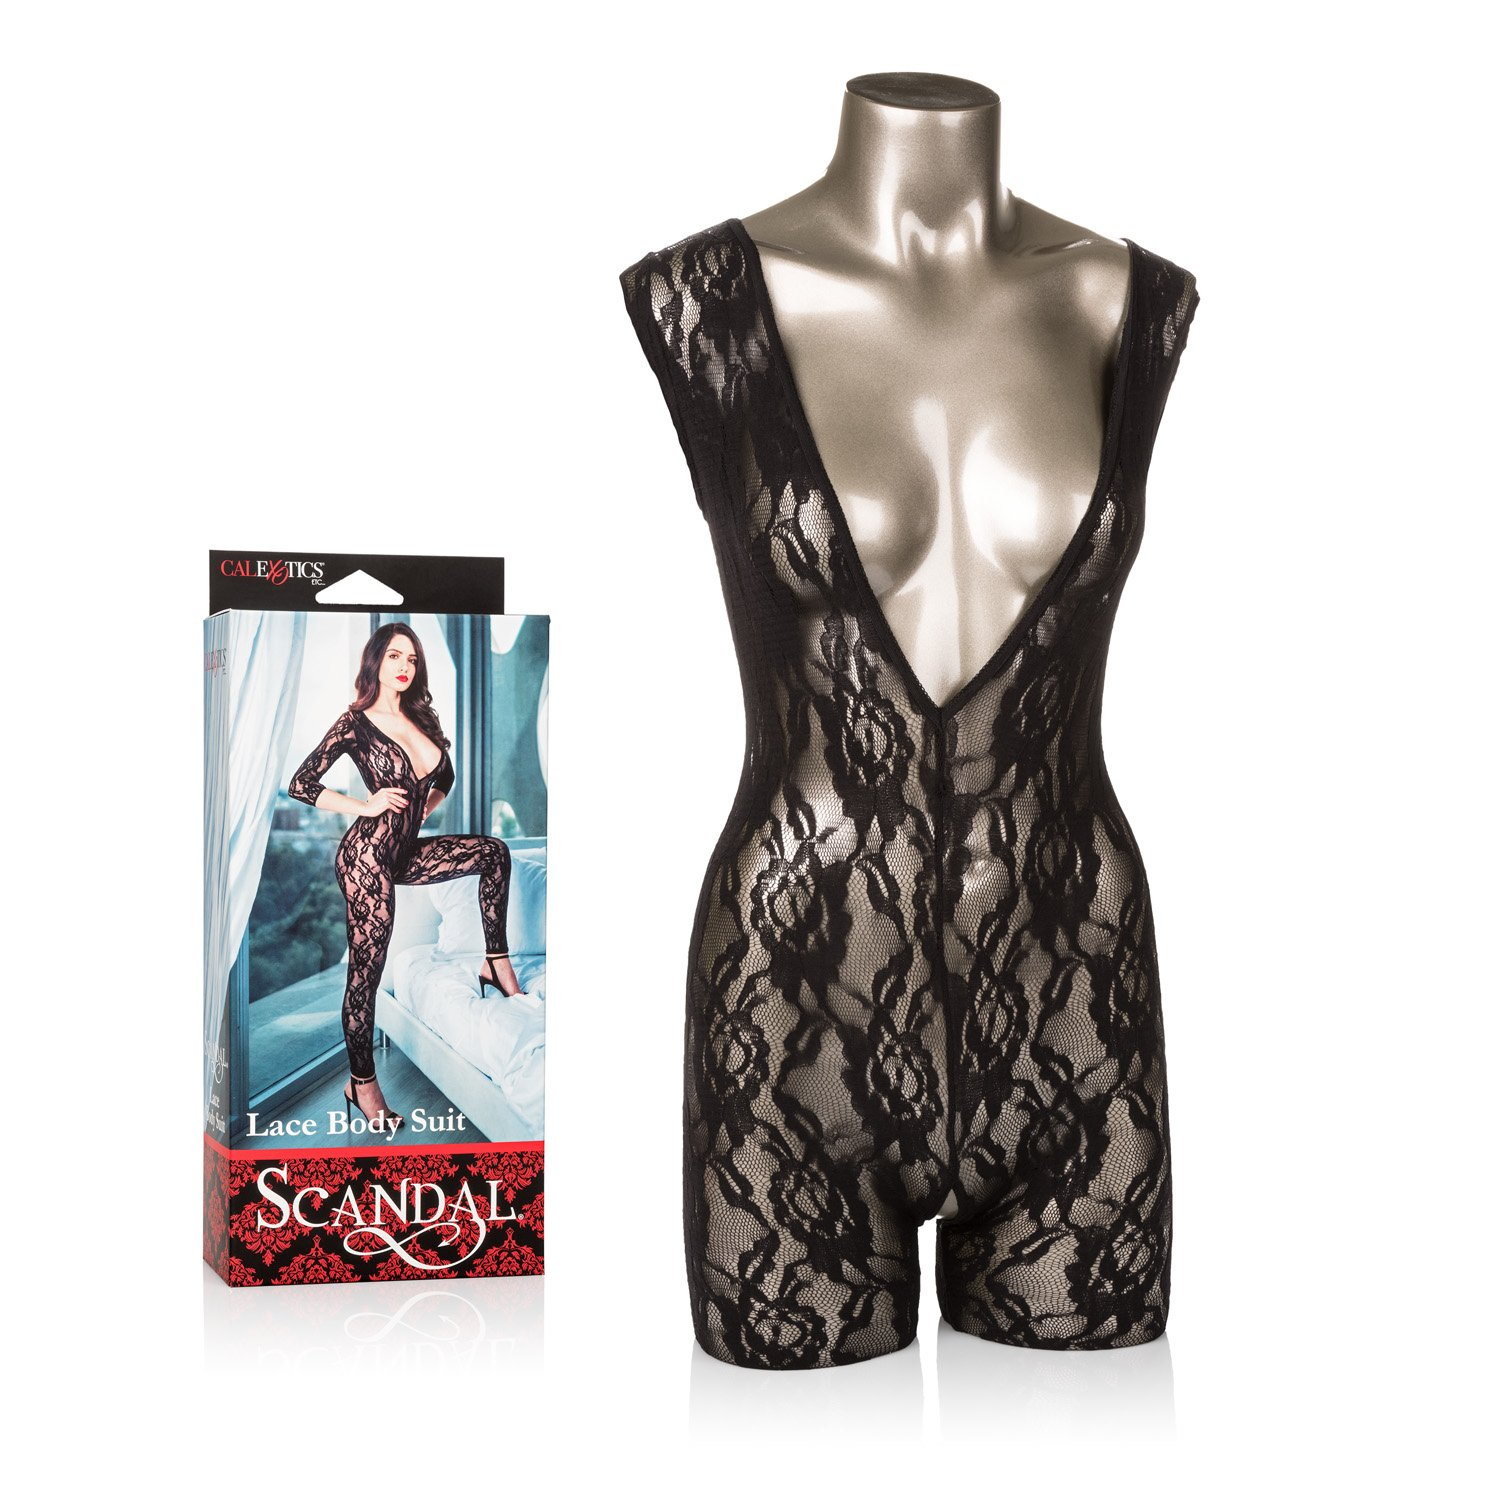 734259cbc Amazon.com  CalExotics Scandal Body Suit – Erotic BDSM Fetish Outfit for  Couples – Fetish Role Playing Jumper - Black  Health   Personal Care